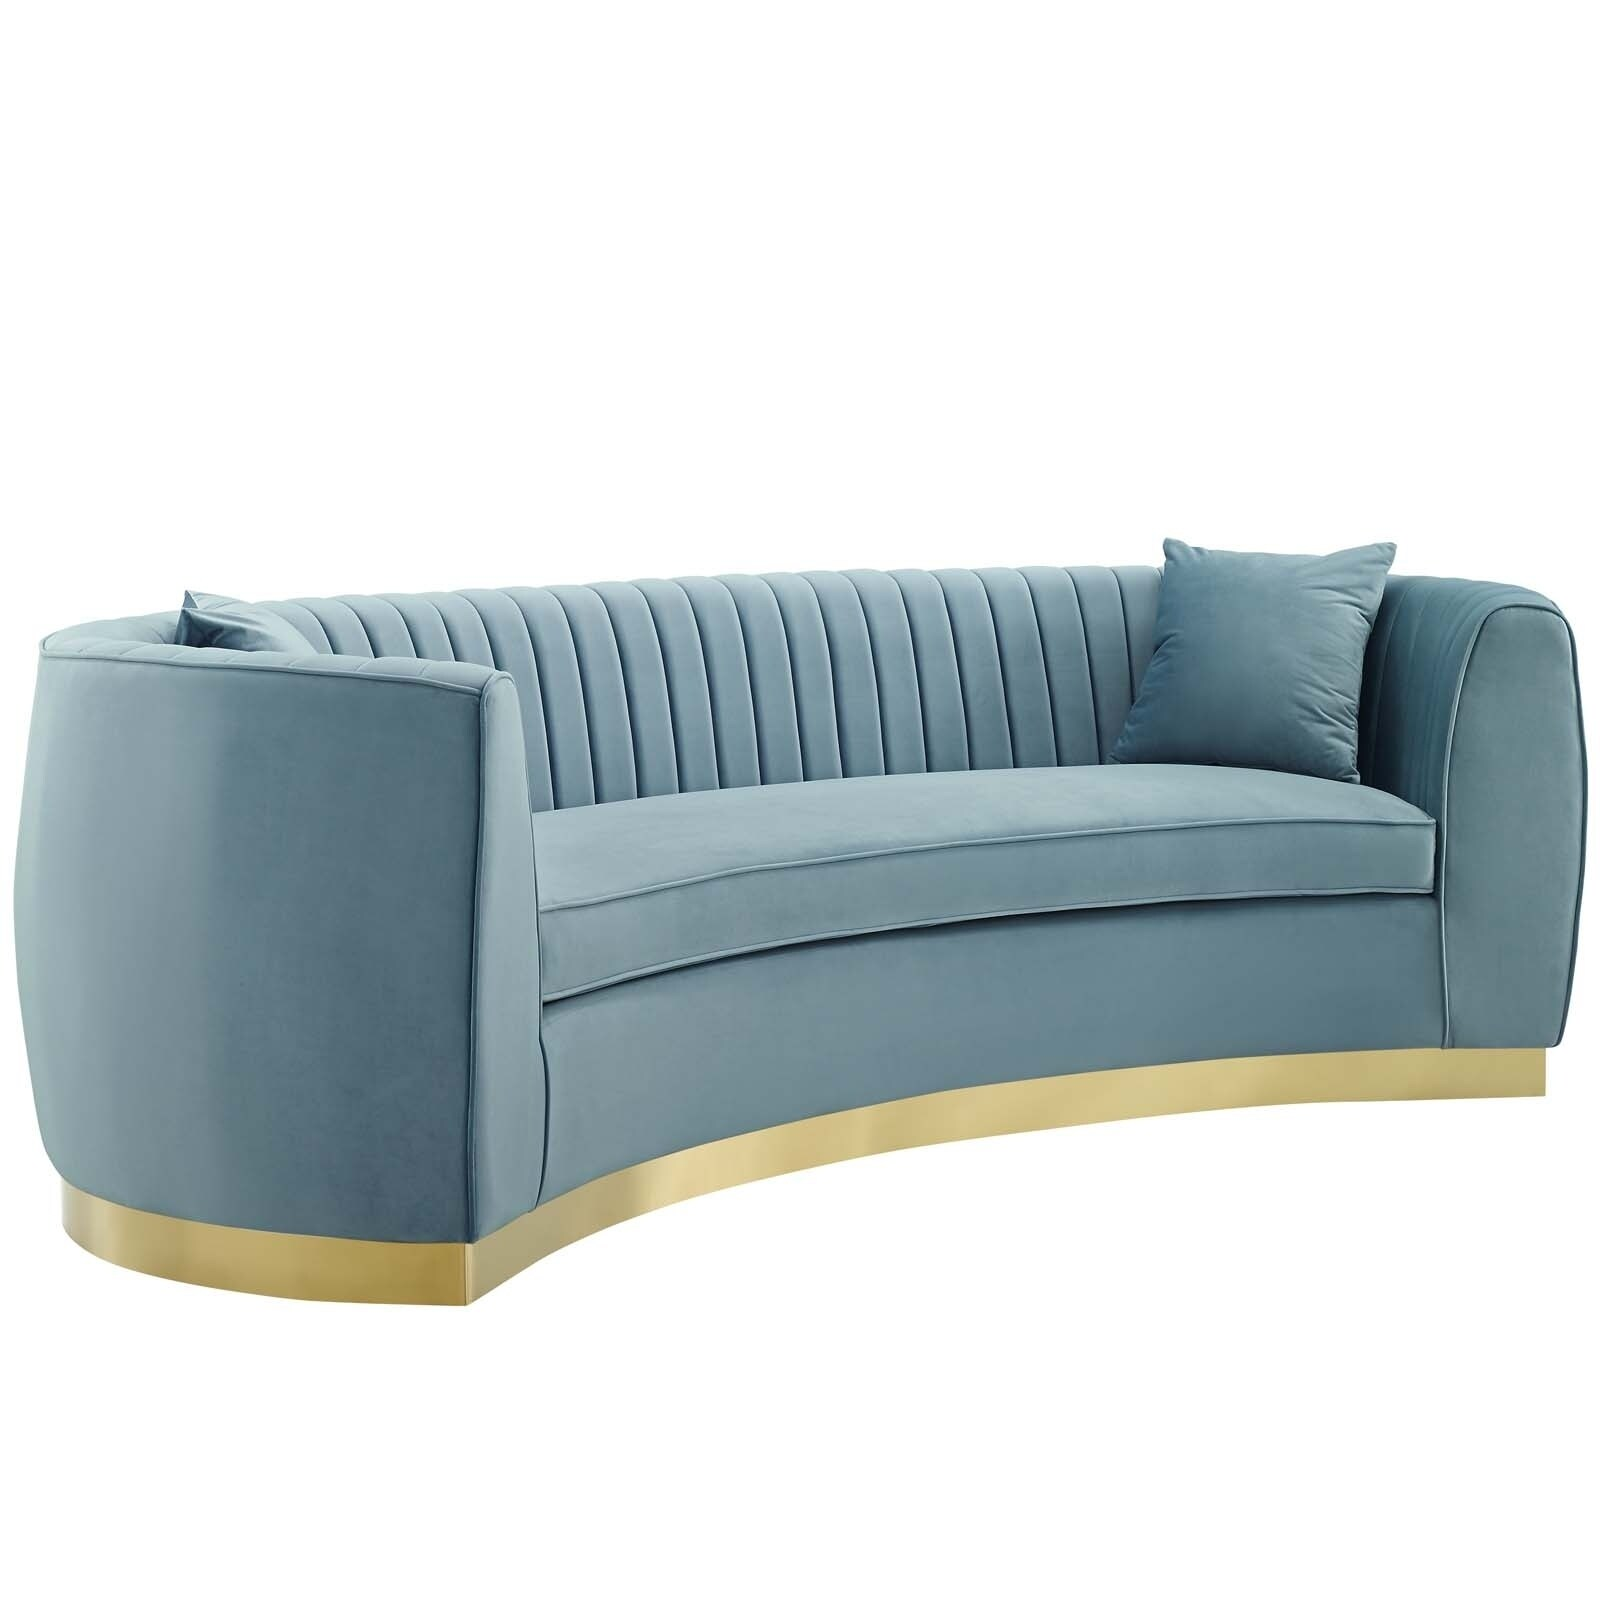 Curved Sofa Silver Orchid Perez Velvet Channel Tufted Curved Sofa